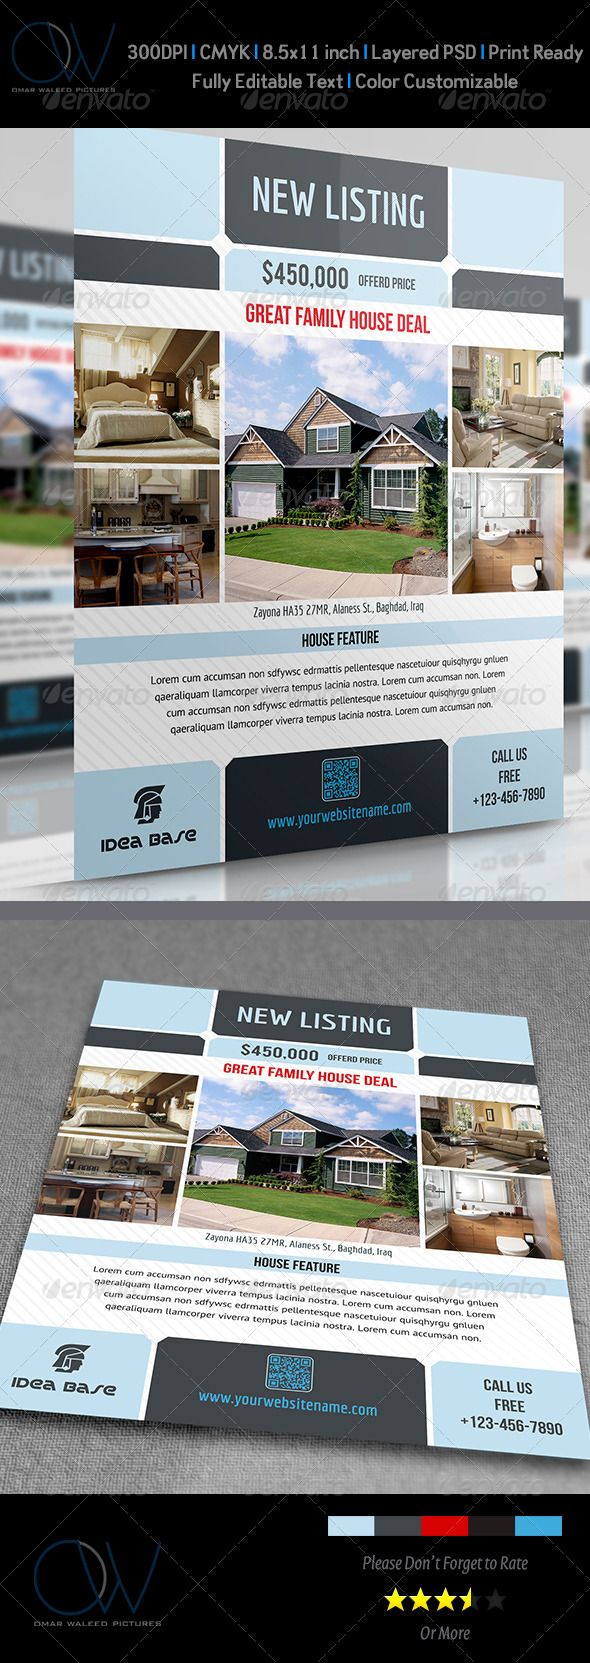 template e flyers template real estate flyer ideas agent templates